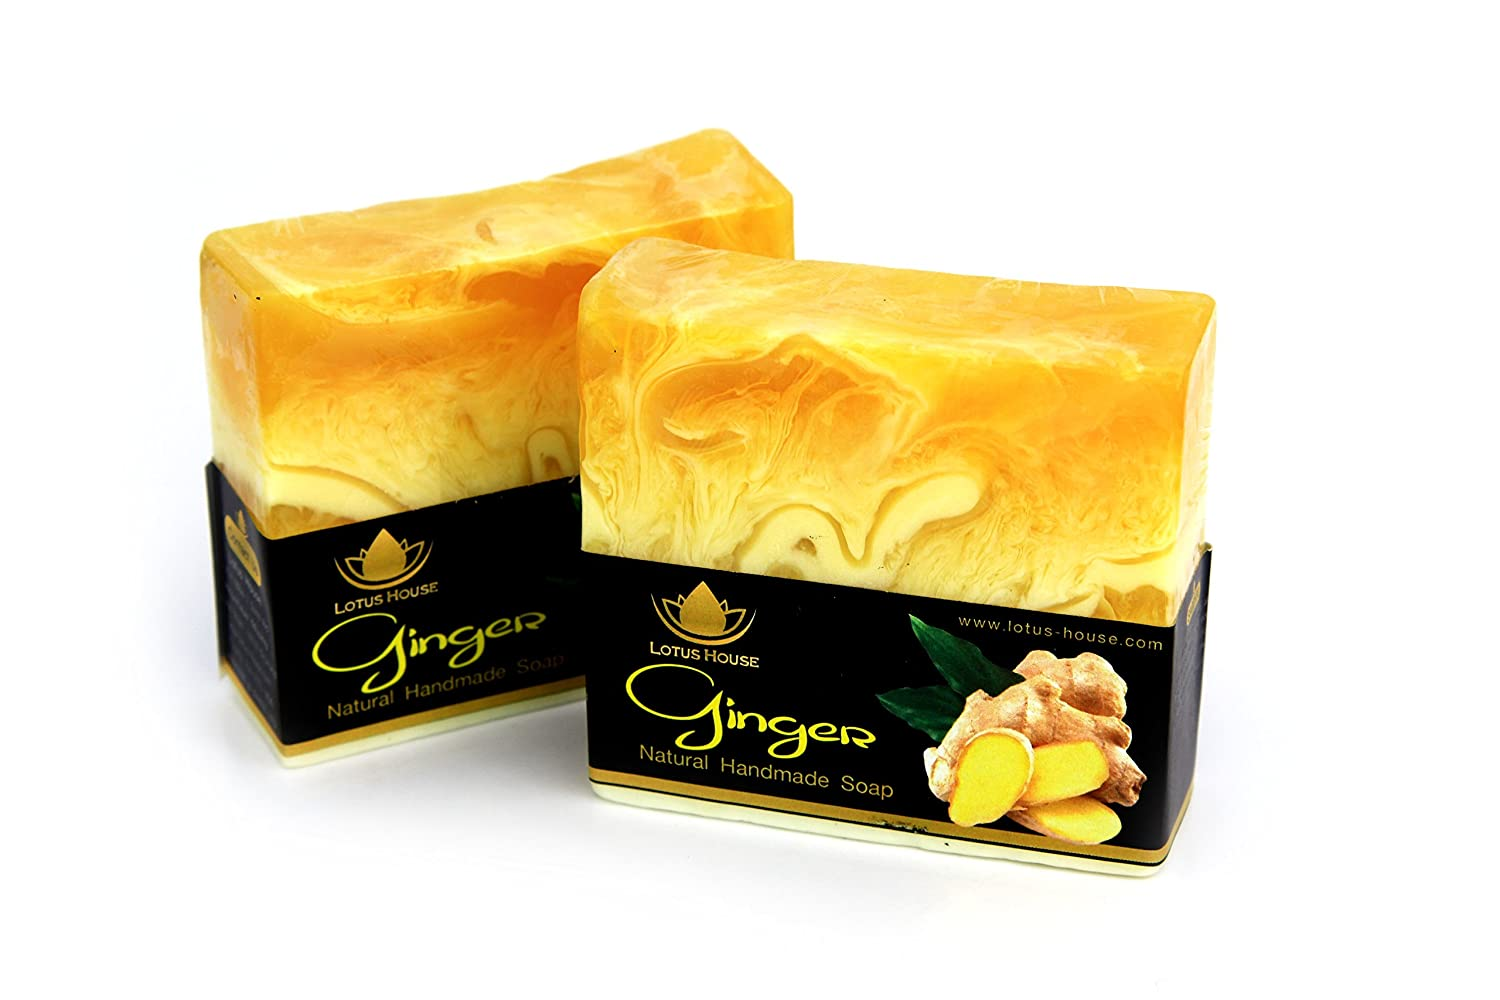 Lotus House Ginger Natural Handmade Soap (300g) / 3 Bars SA0100